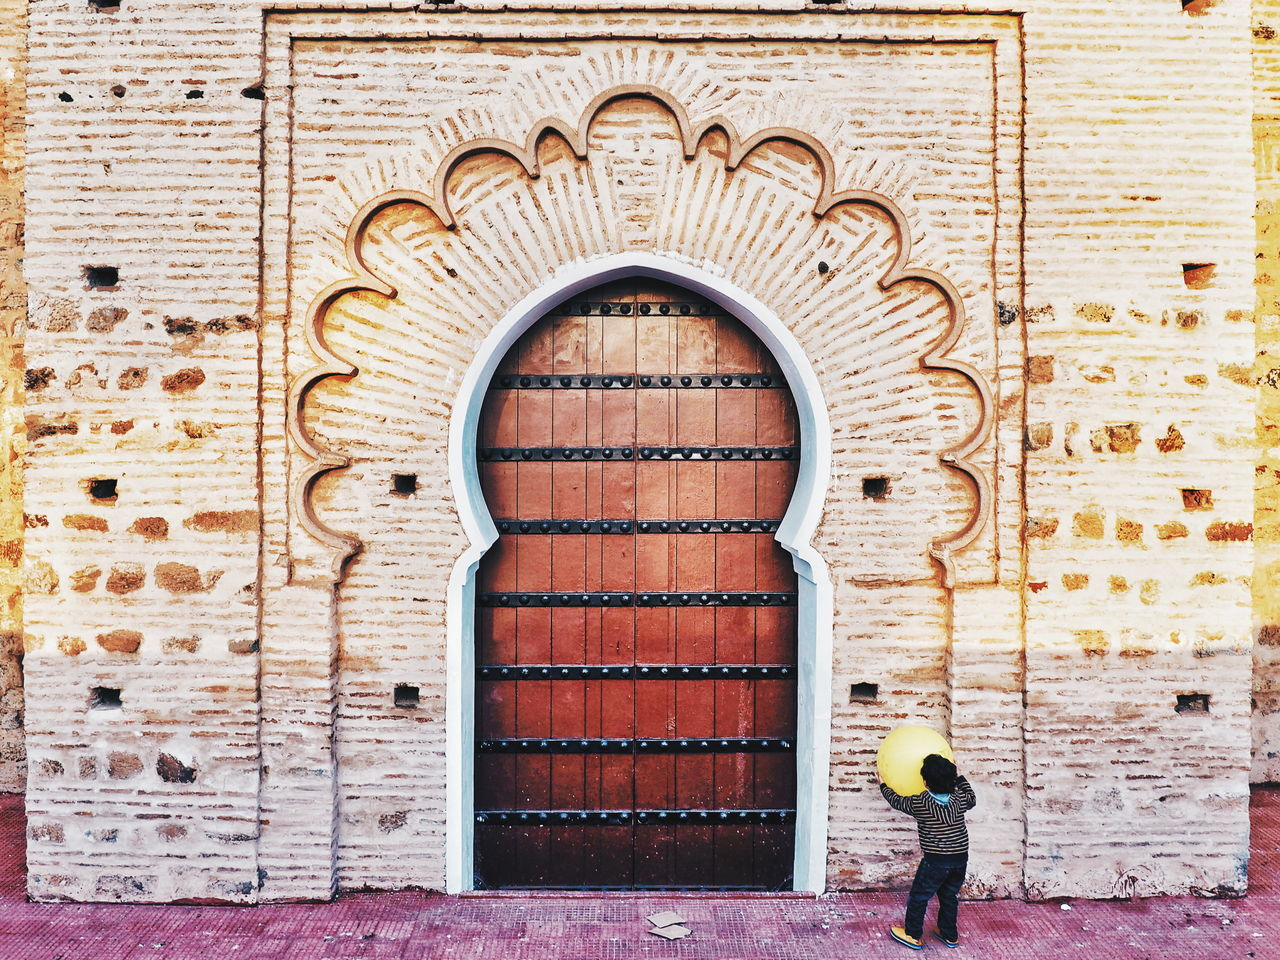 Door Entrance Day Architecture Doorway Built Structure Building Exterior Outdoors Real People People Adult One Person Adults Only Only Men Playing Playing Child Childhood Children Playing Mosque Islamic Architecture Marrakech Innocence Morocco Morocco 🇲🇦 The Secret Spaces